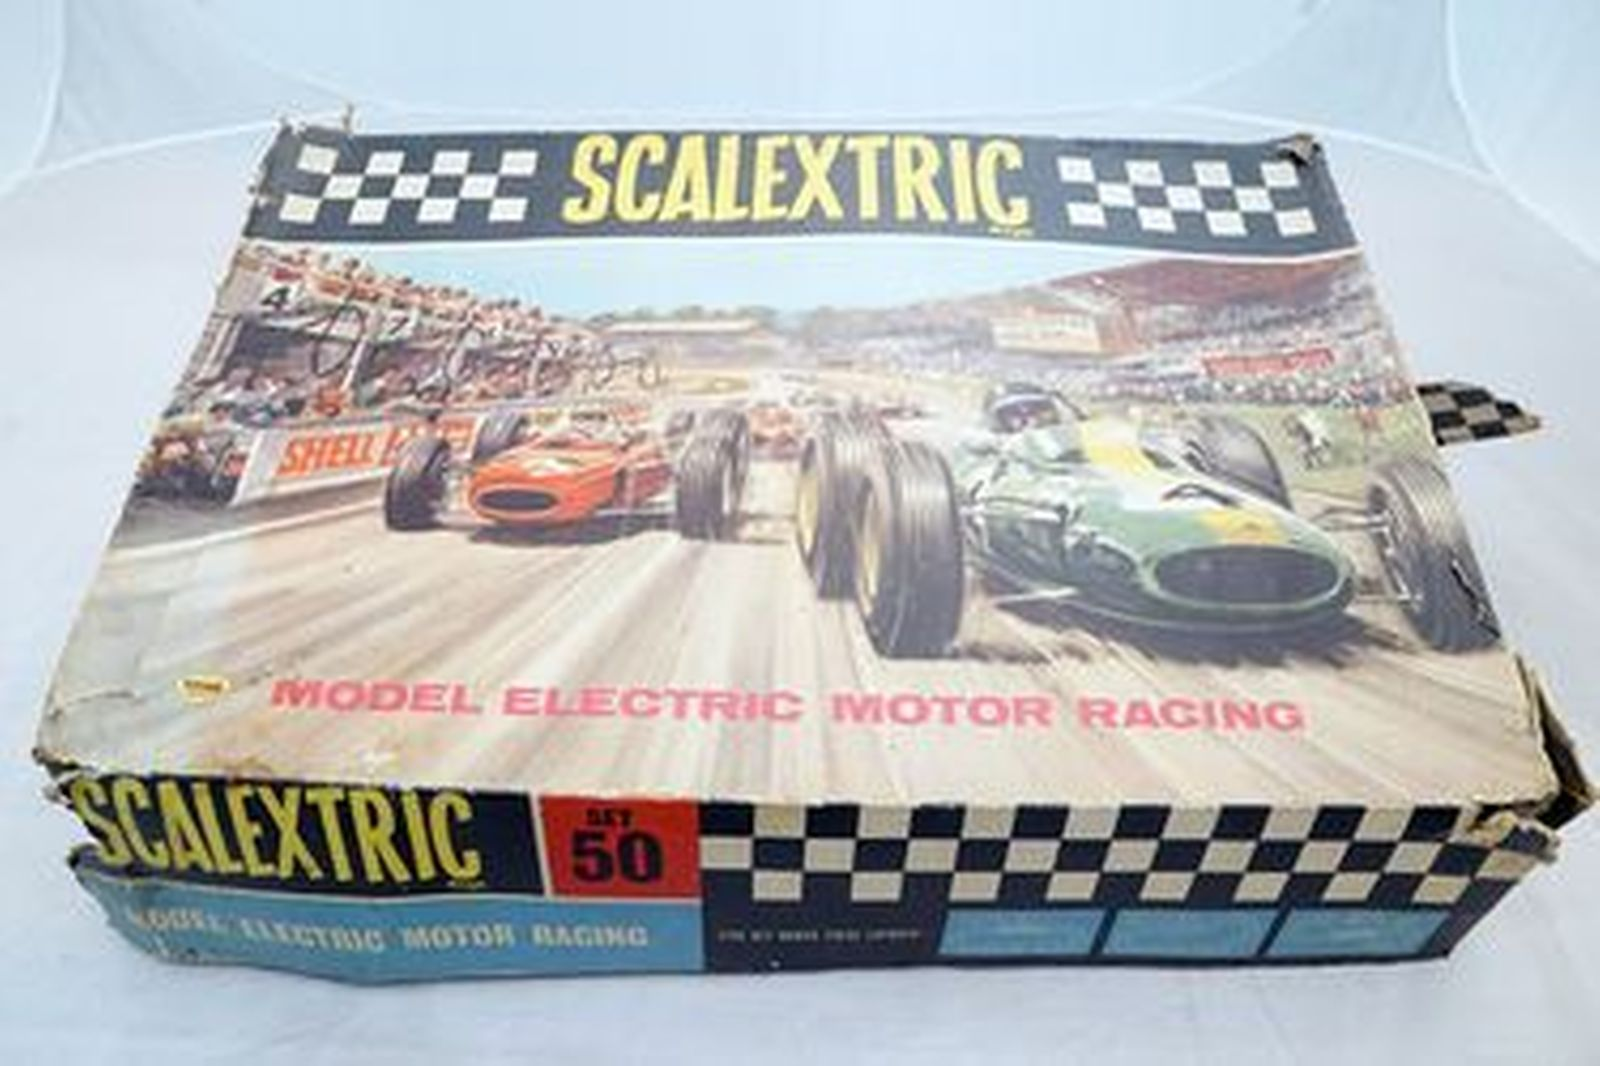 Scalextrics Set Vintage - Slot Car Set Scale 1:25 with Extra Track in Box